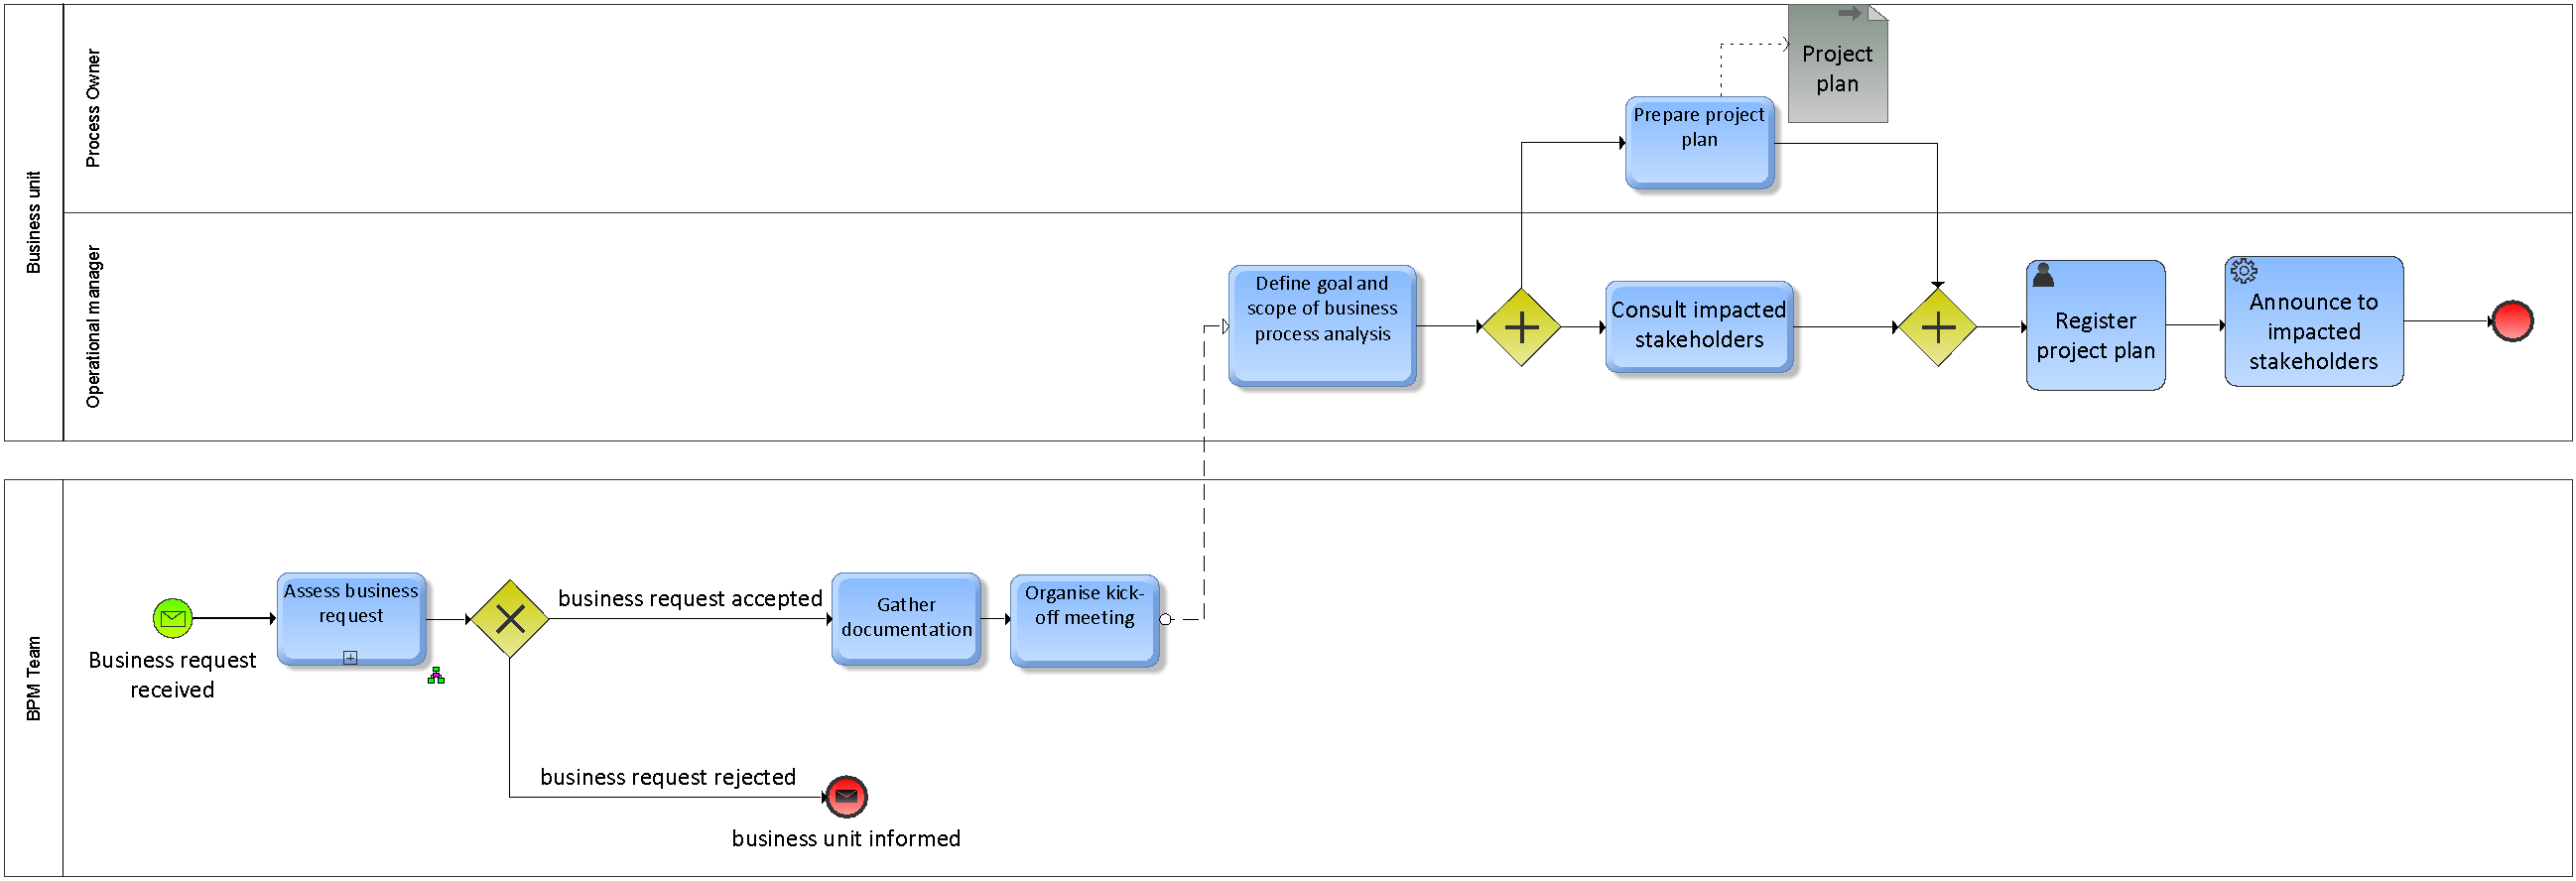 what is the difference between flow charts and bpmn rh keniasousa github io BPMN Chart BPMN Flowchart